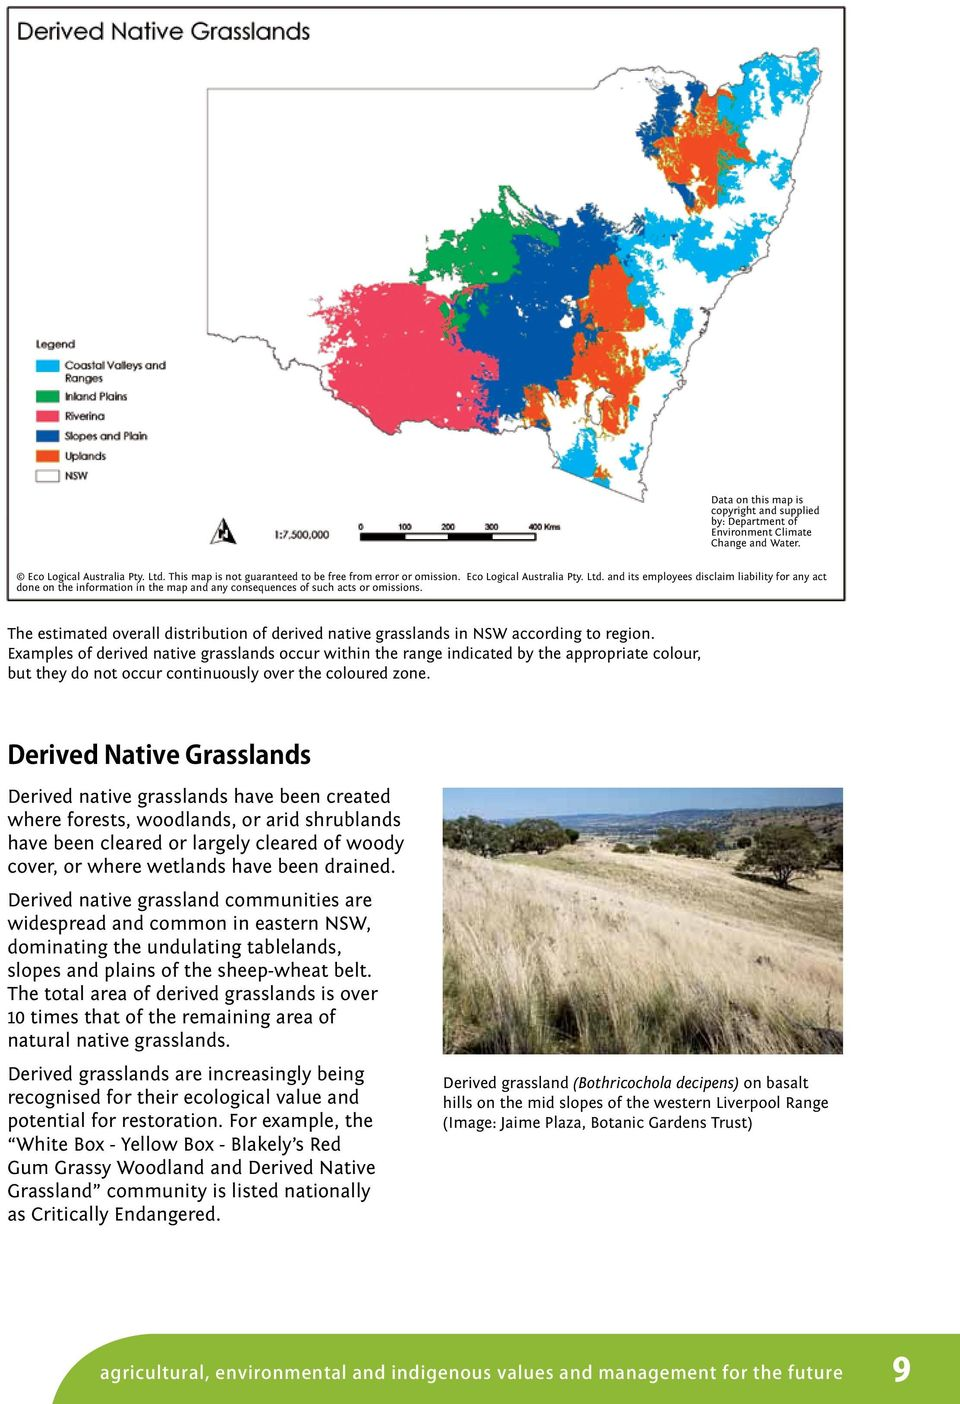 The estimated overall distribution of derived native grasslands in NSW according to region.